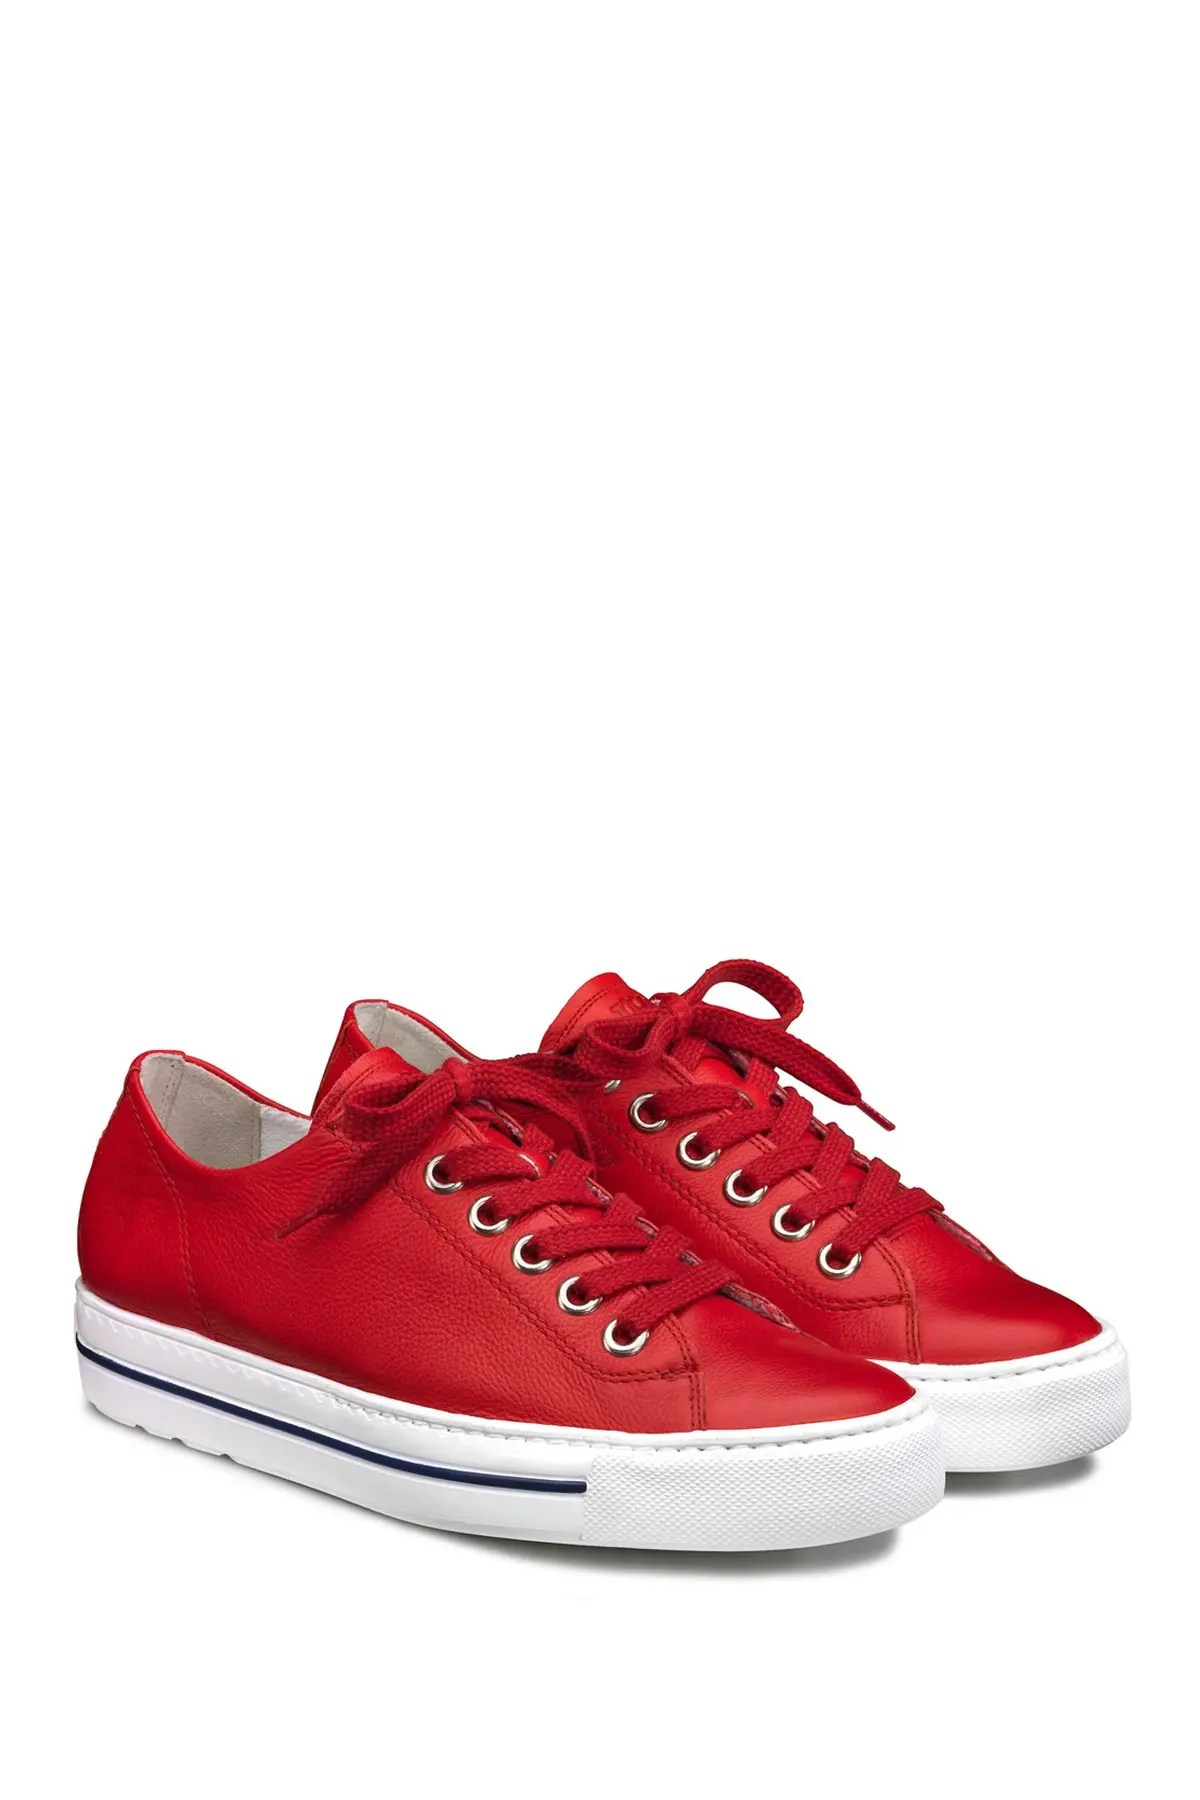 paul green leather lace up sneaker nordstrom rack